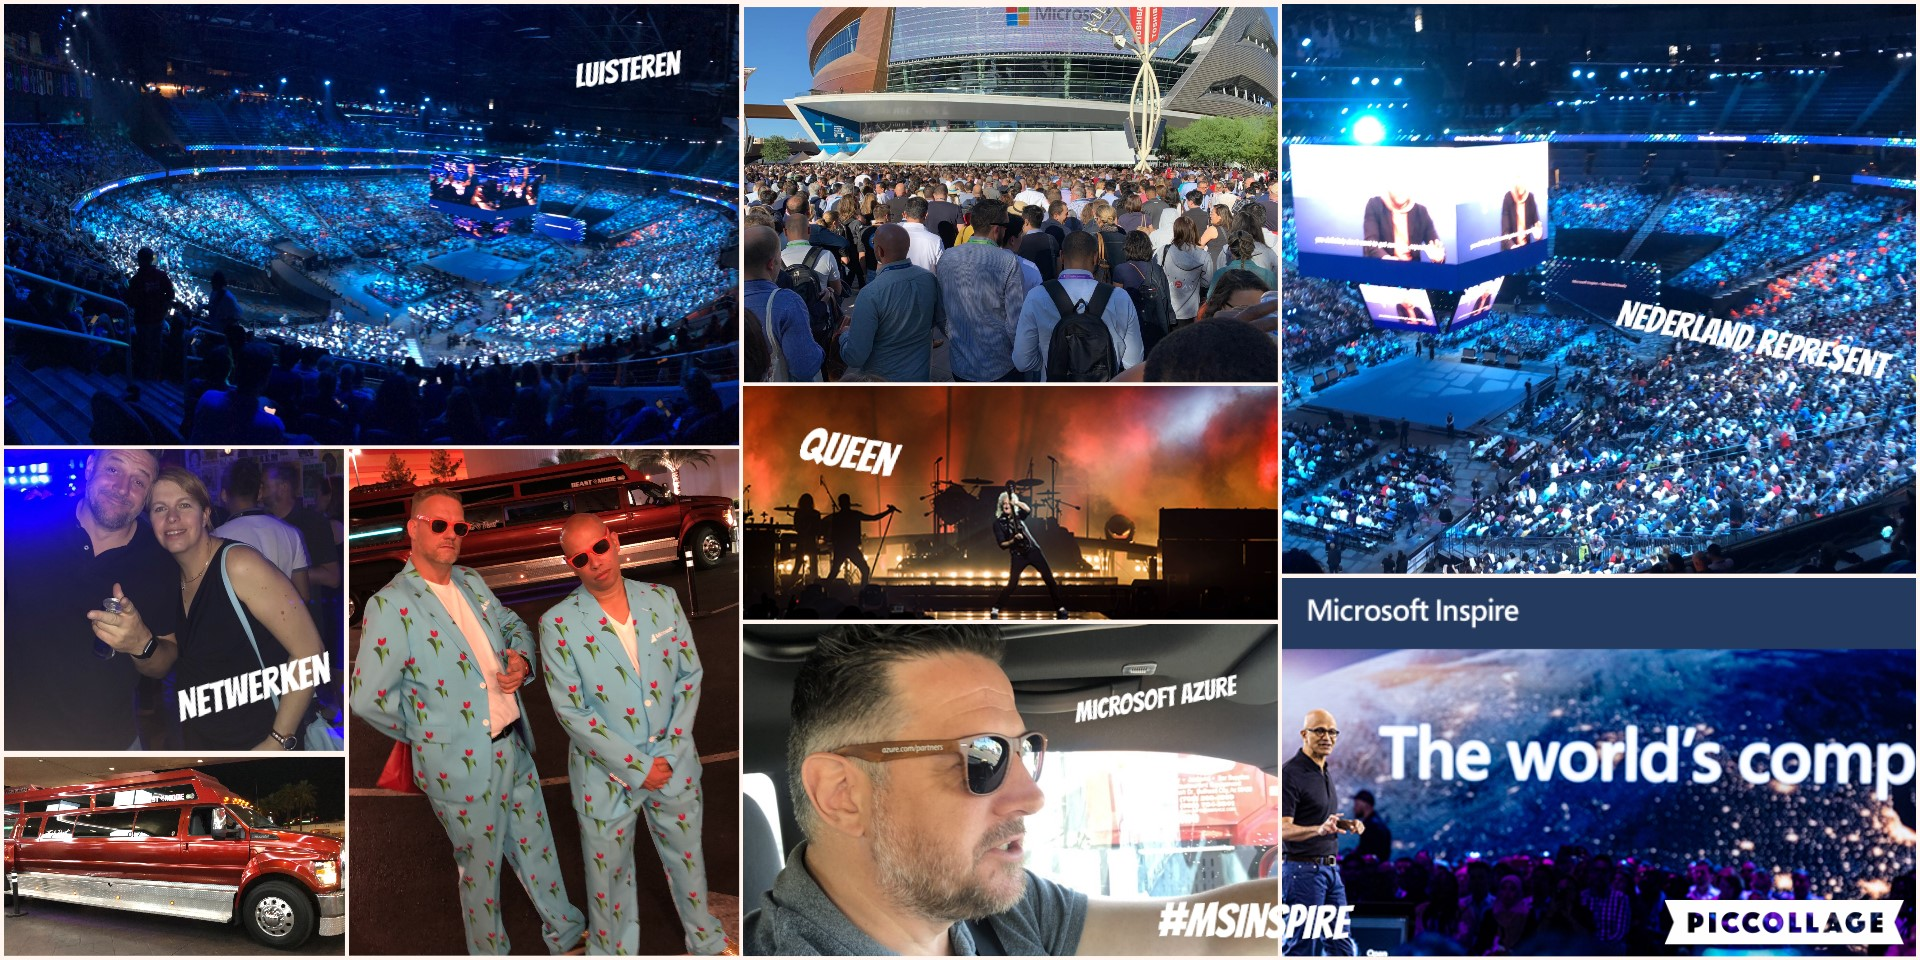 It's (almost) a wrap….Microsoft Inspire 2019, we had a blast!